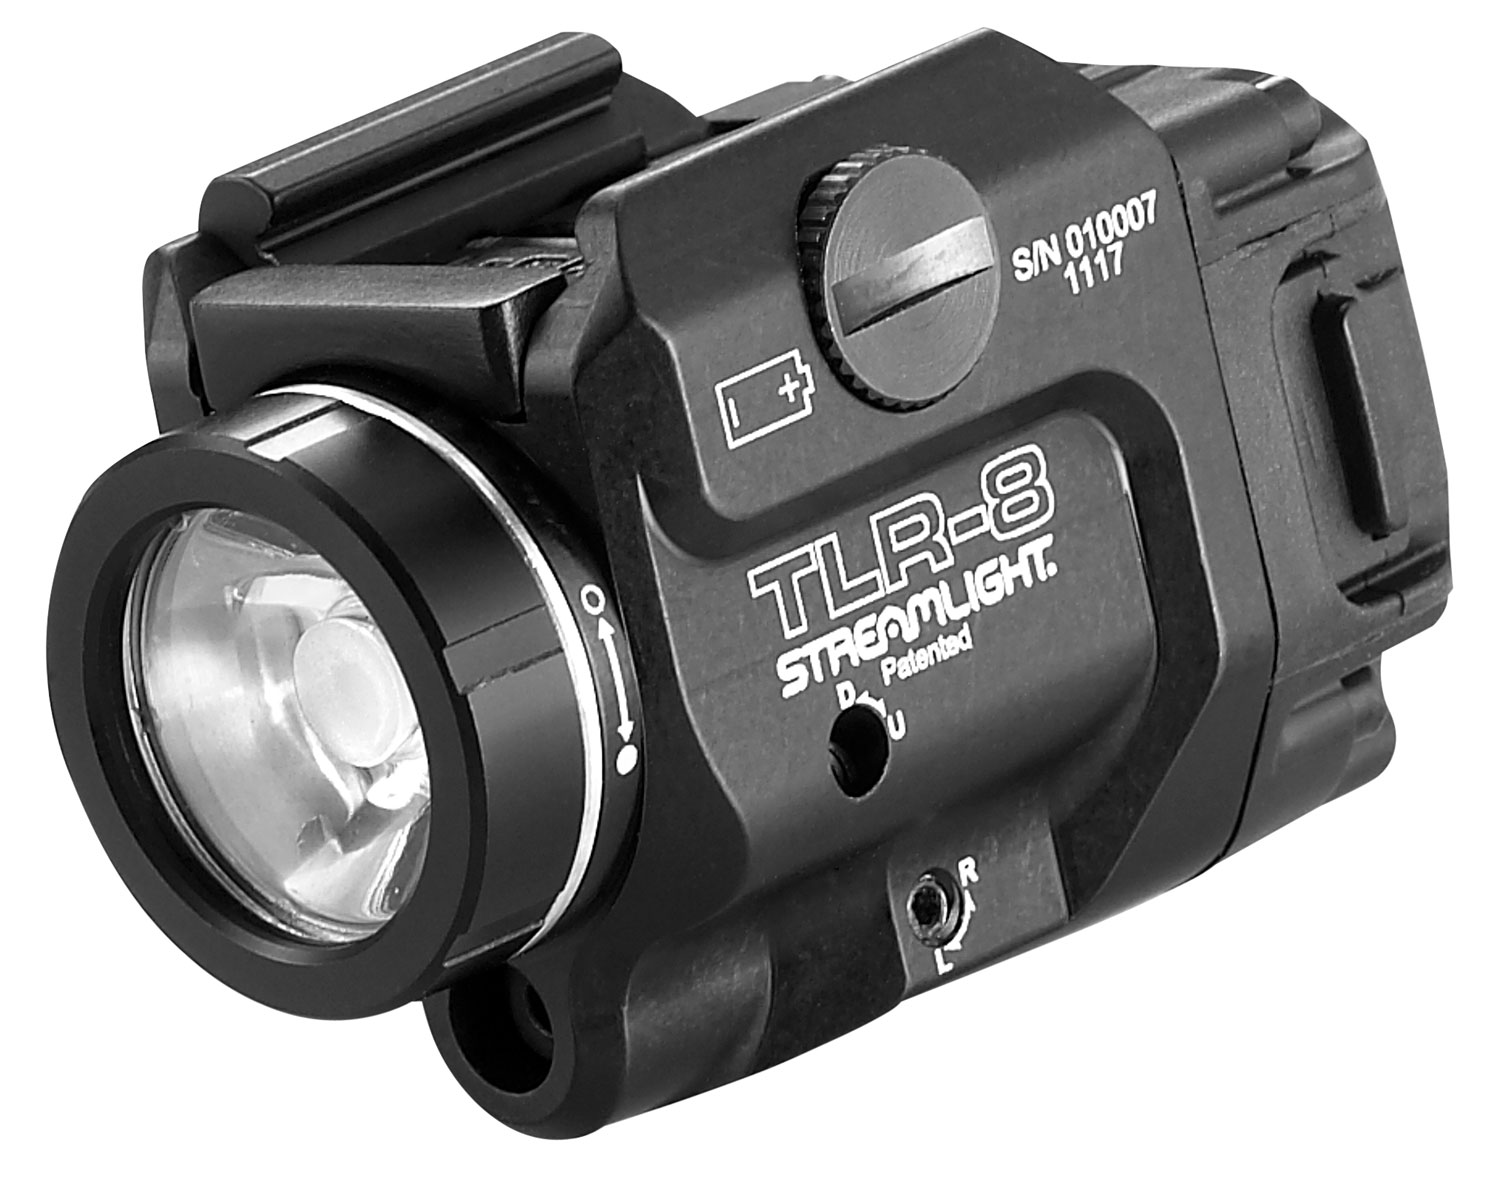 Streamlight TLR-8 500L Gun Light with Red Laser